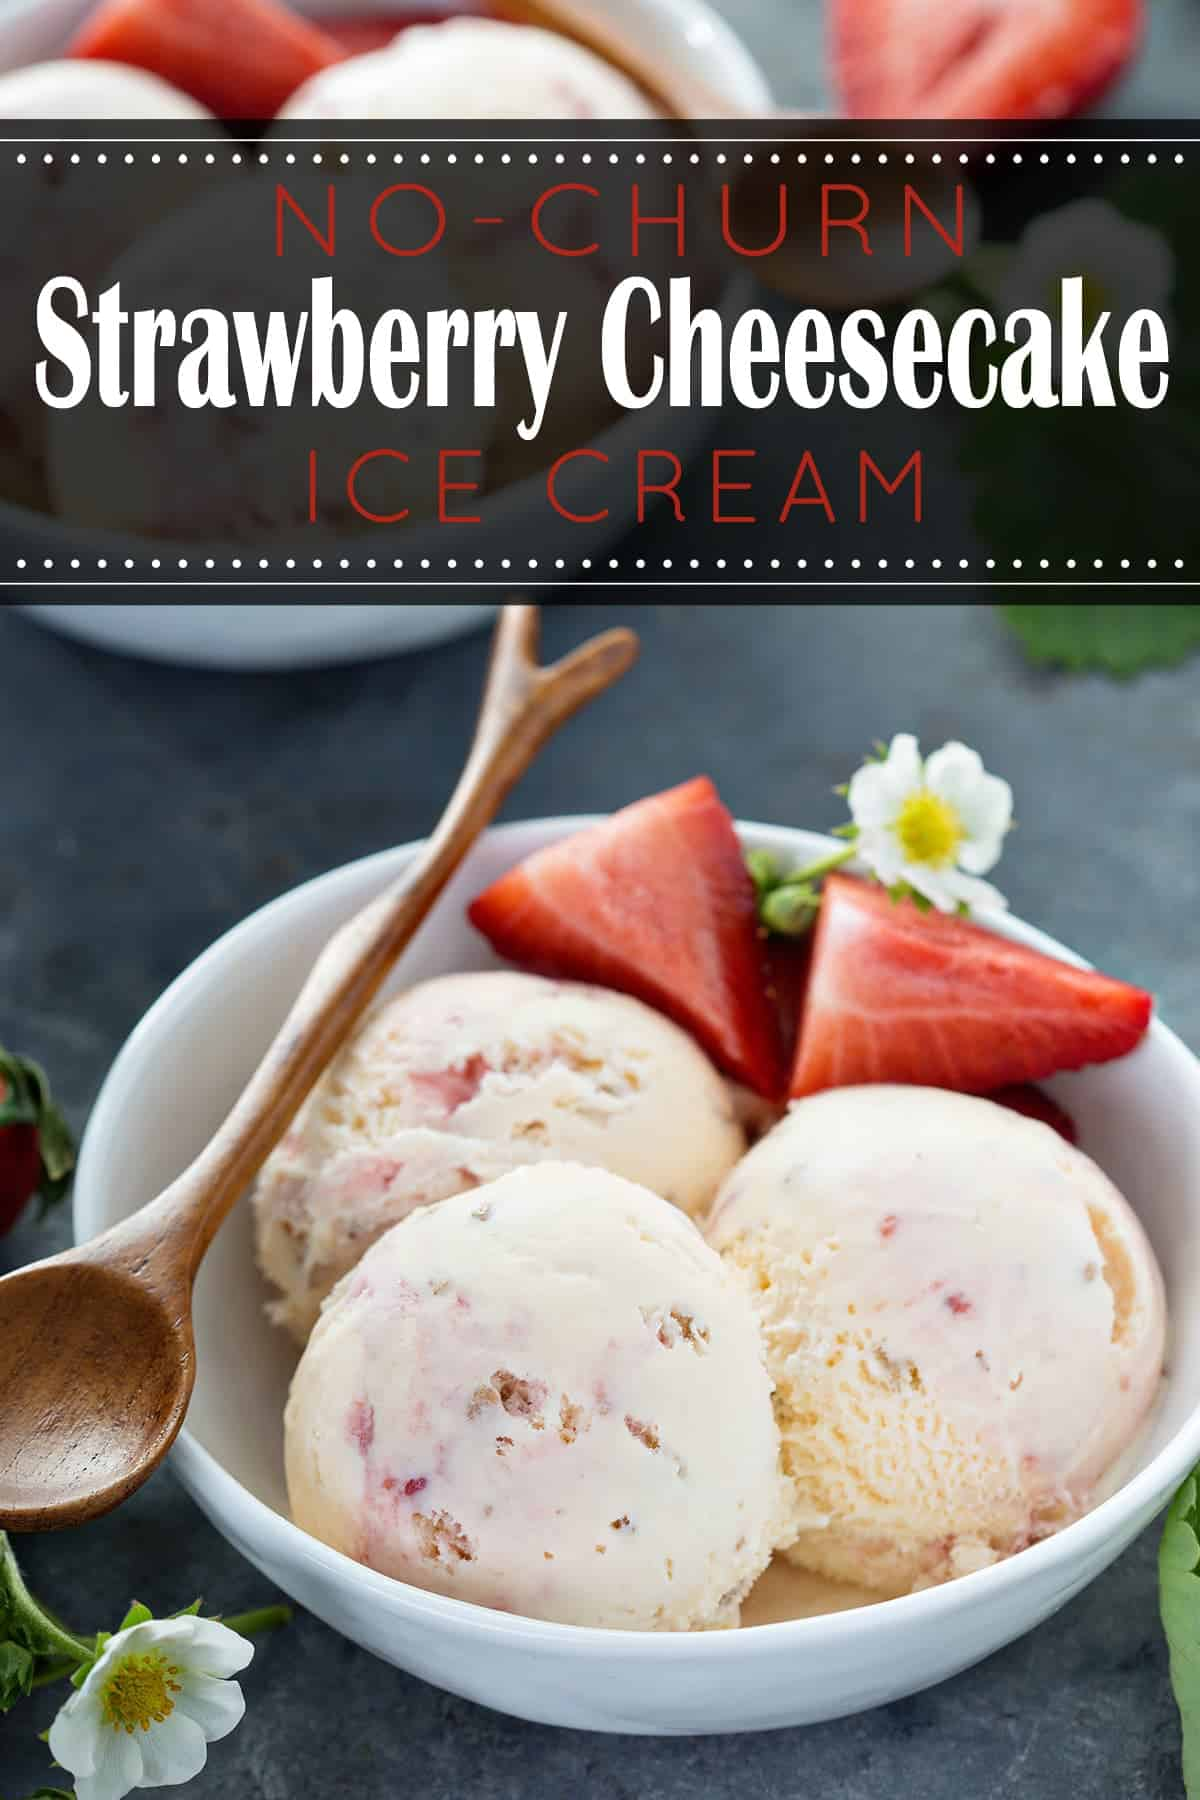 Scoops of decadent Strawberry Cheesecake ice cream in white bowl with sliced strawberries, daisy, and wooden spoon on black surface with recipe title.